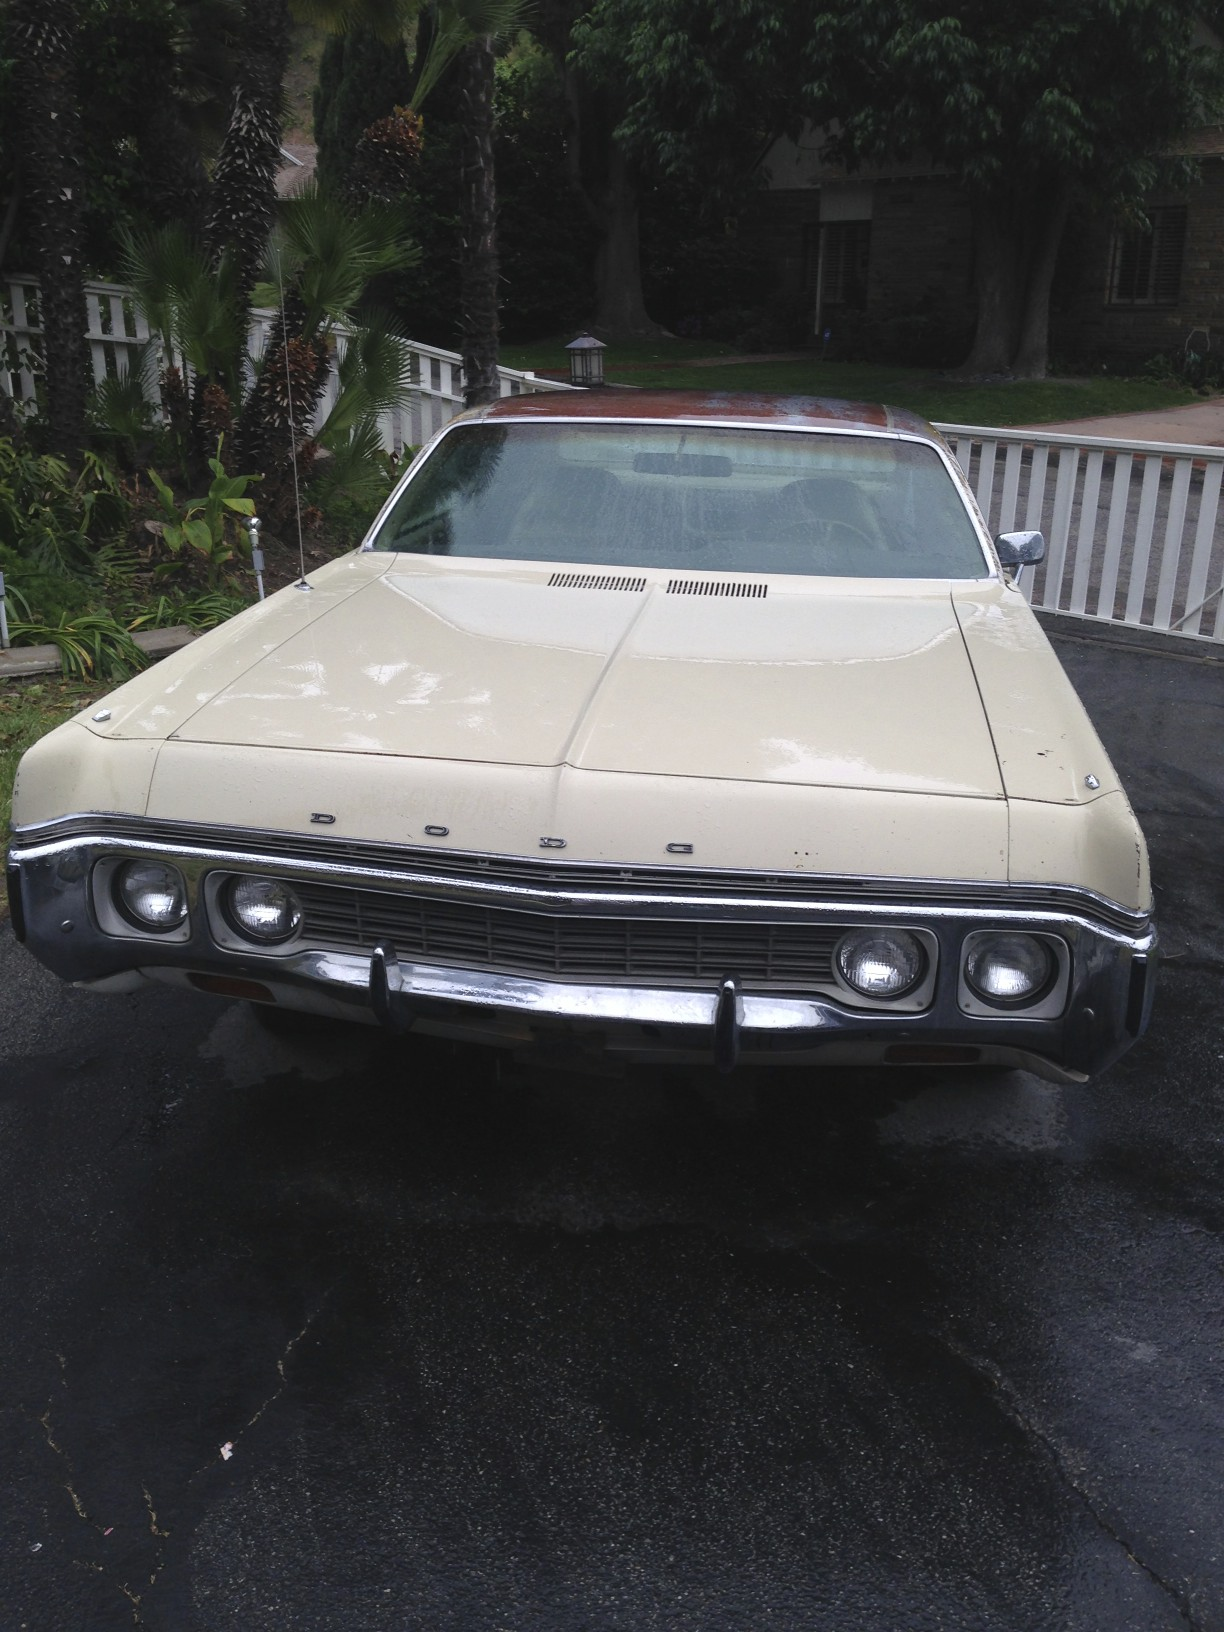 More Dents Per Mile: 1972 Dodge Polara